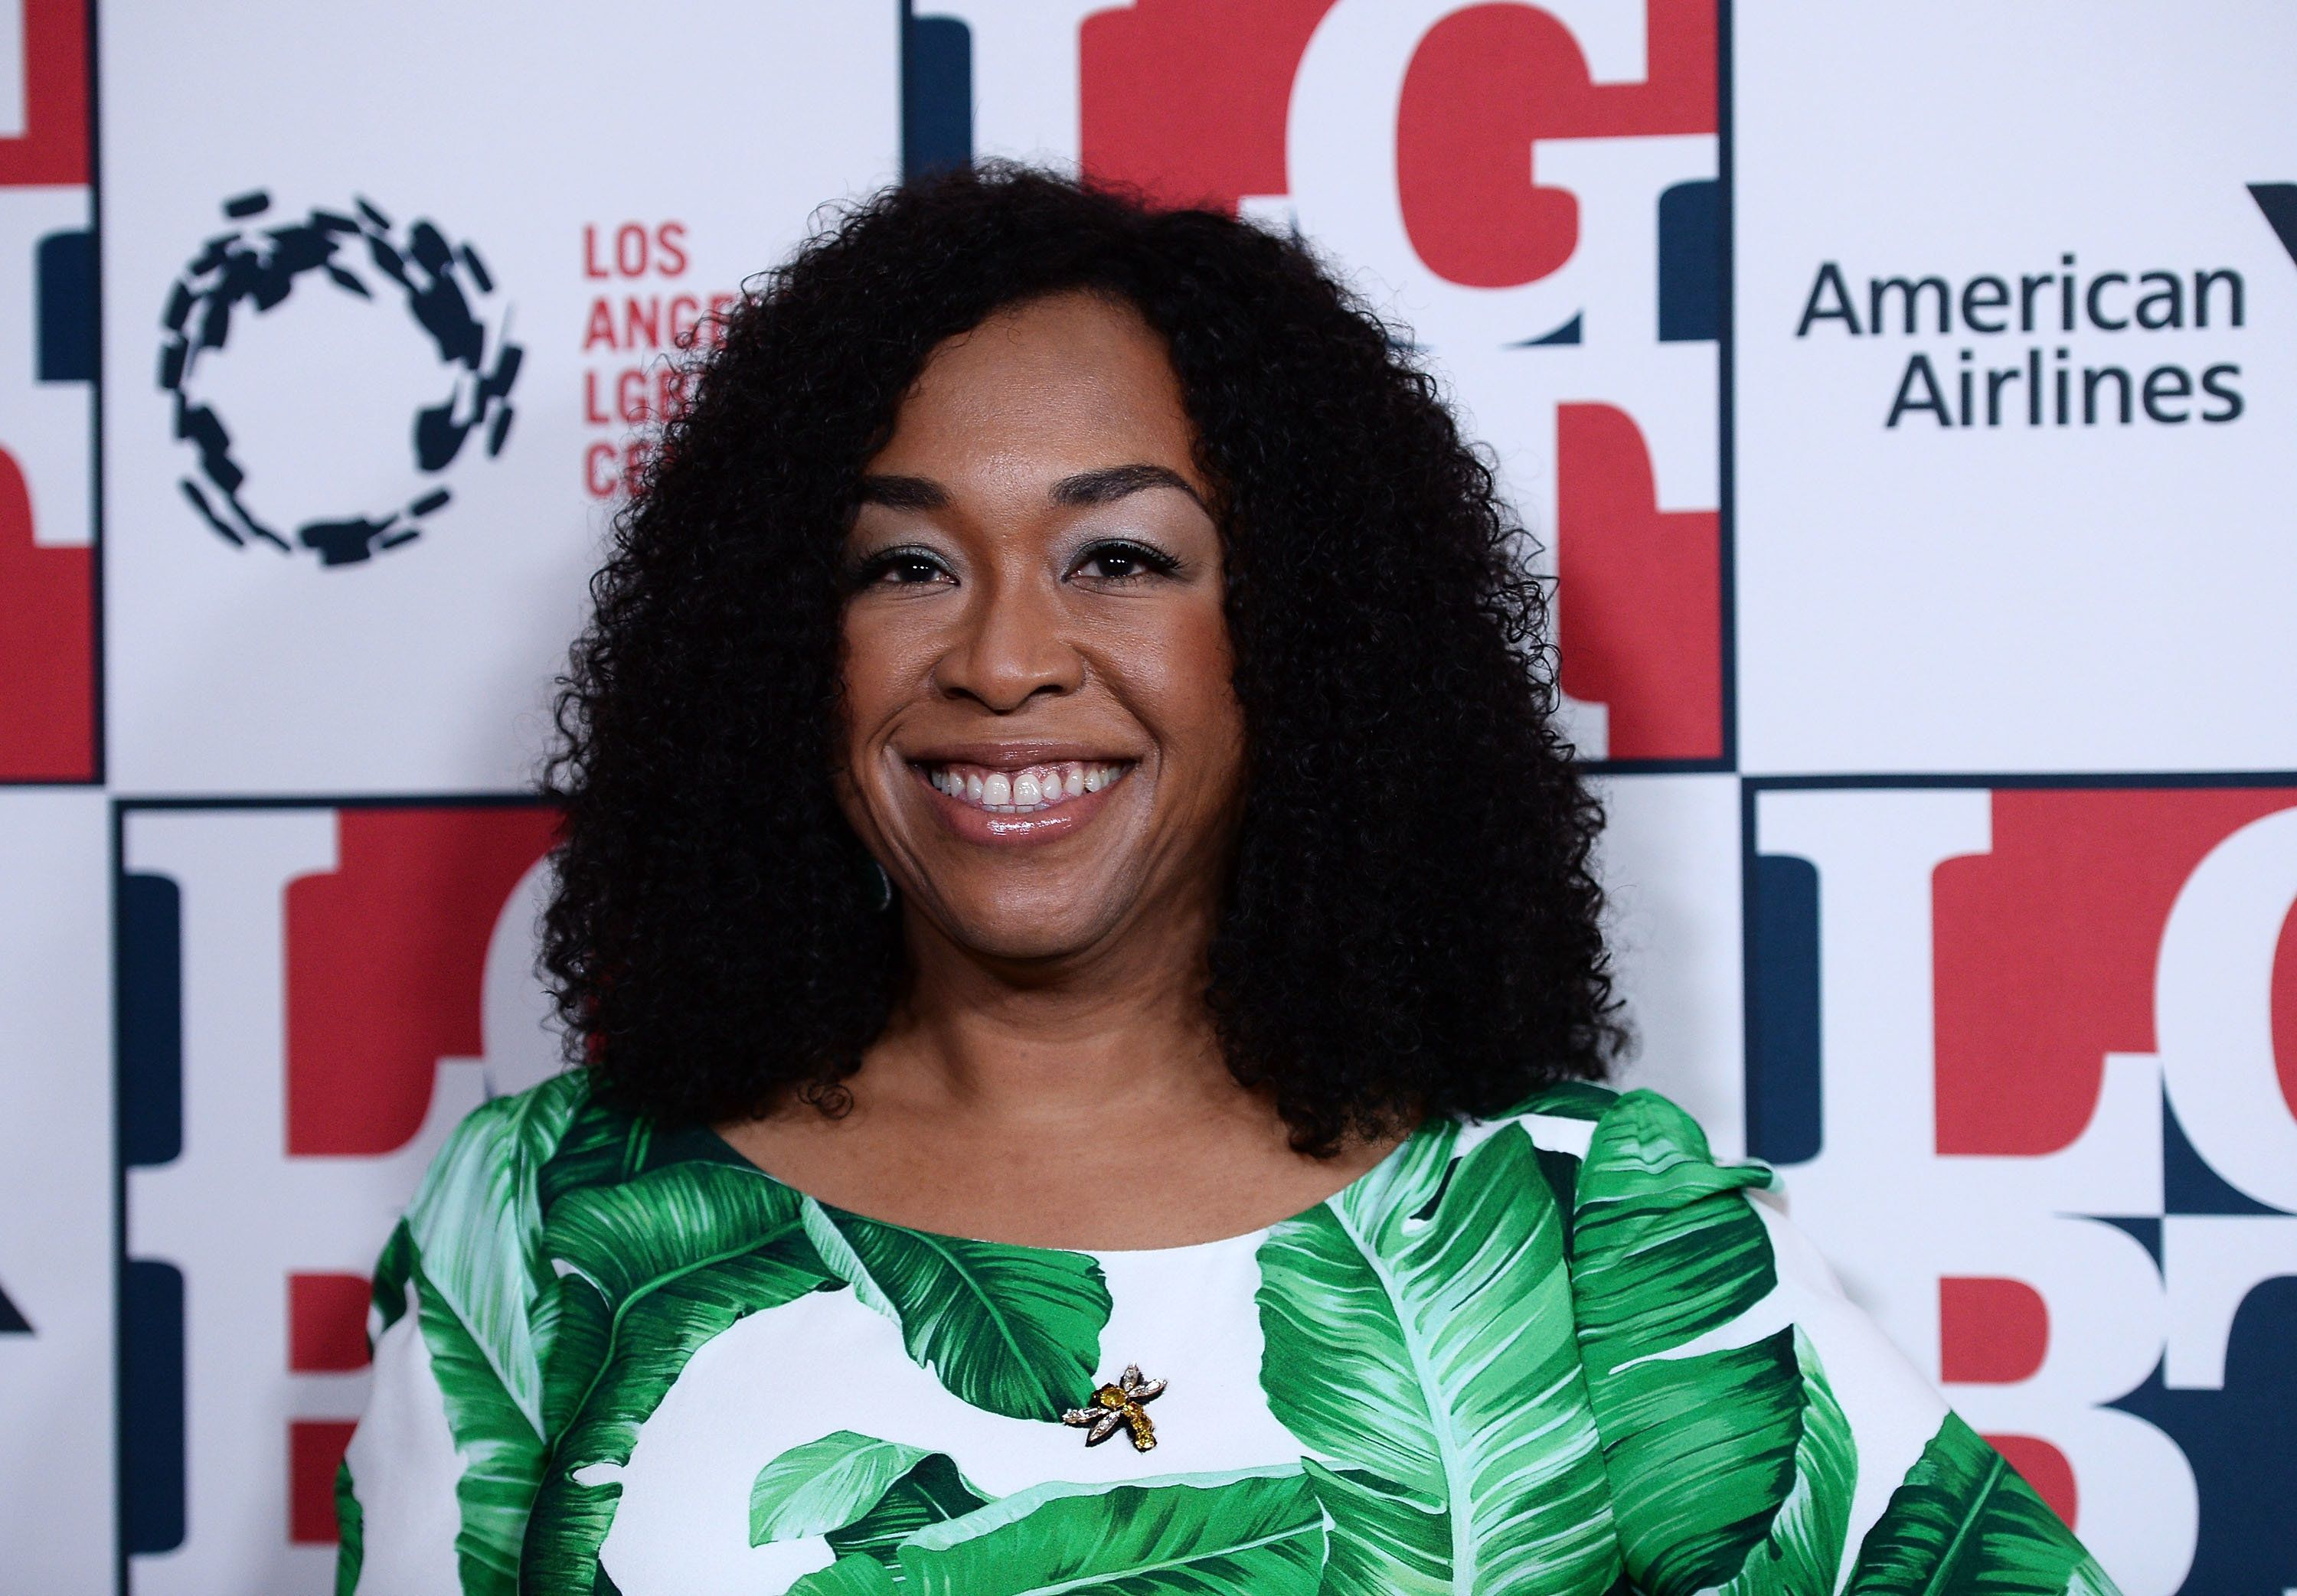 BEVERLY HILLS, CA - SEPTEMBER 23:  Producer Shonda Rhimes arrives at the Los Angeles LGBT Center's 48th Anniversary Gala Vanguard Awards at The Beverly Hilton Hotel on September 23, 2017 in Beverly Hills, California.  (Photo by Amanda Edwards/WireImage)